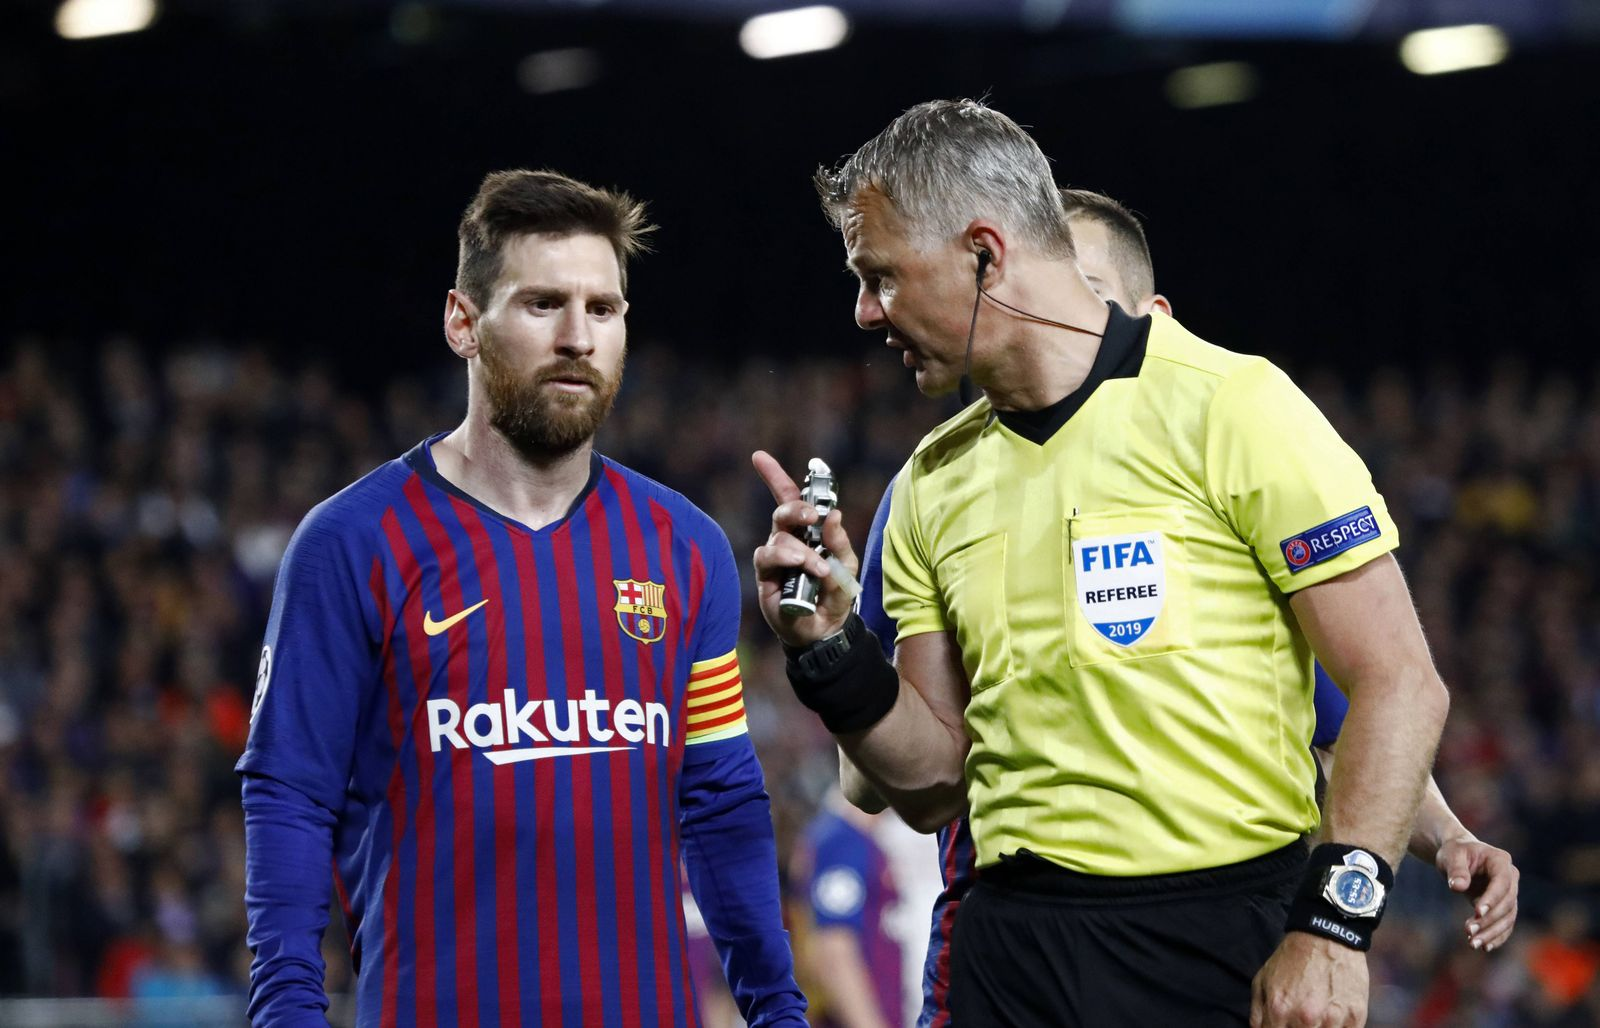 May 1 2019 Barcelona Catalonia Spain Leo Messi and the referee Bjorn Kuipers during the match